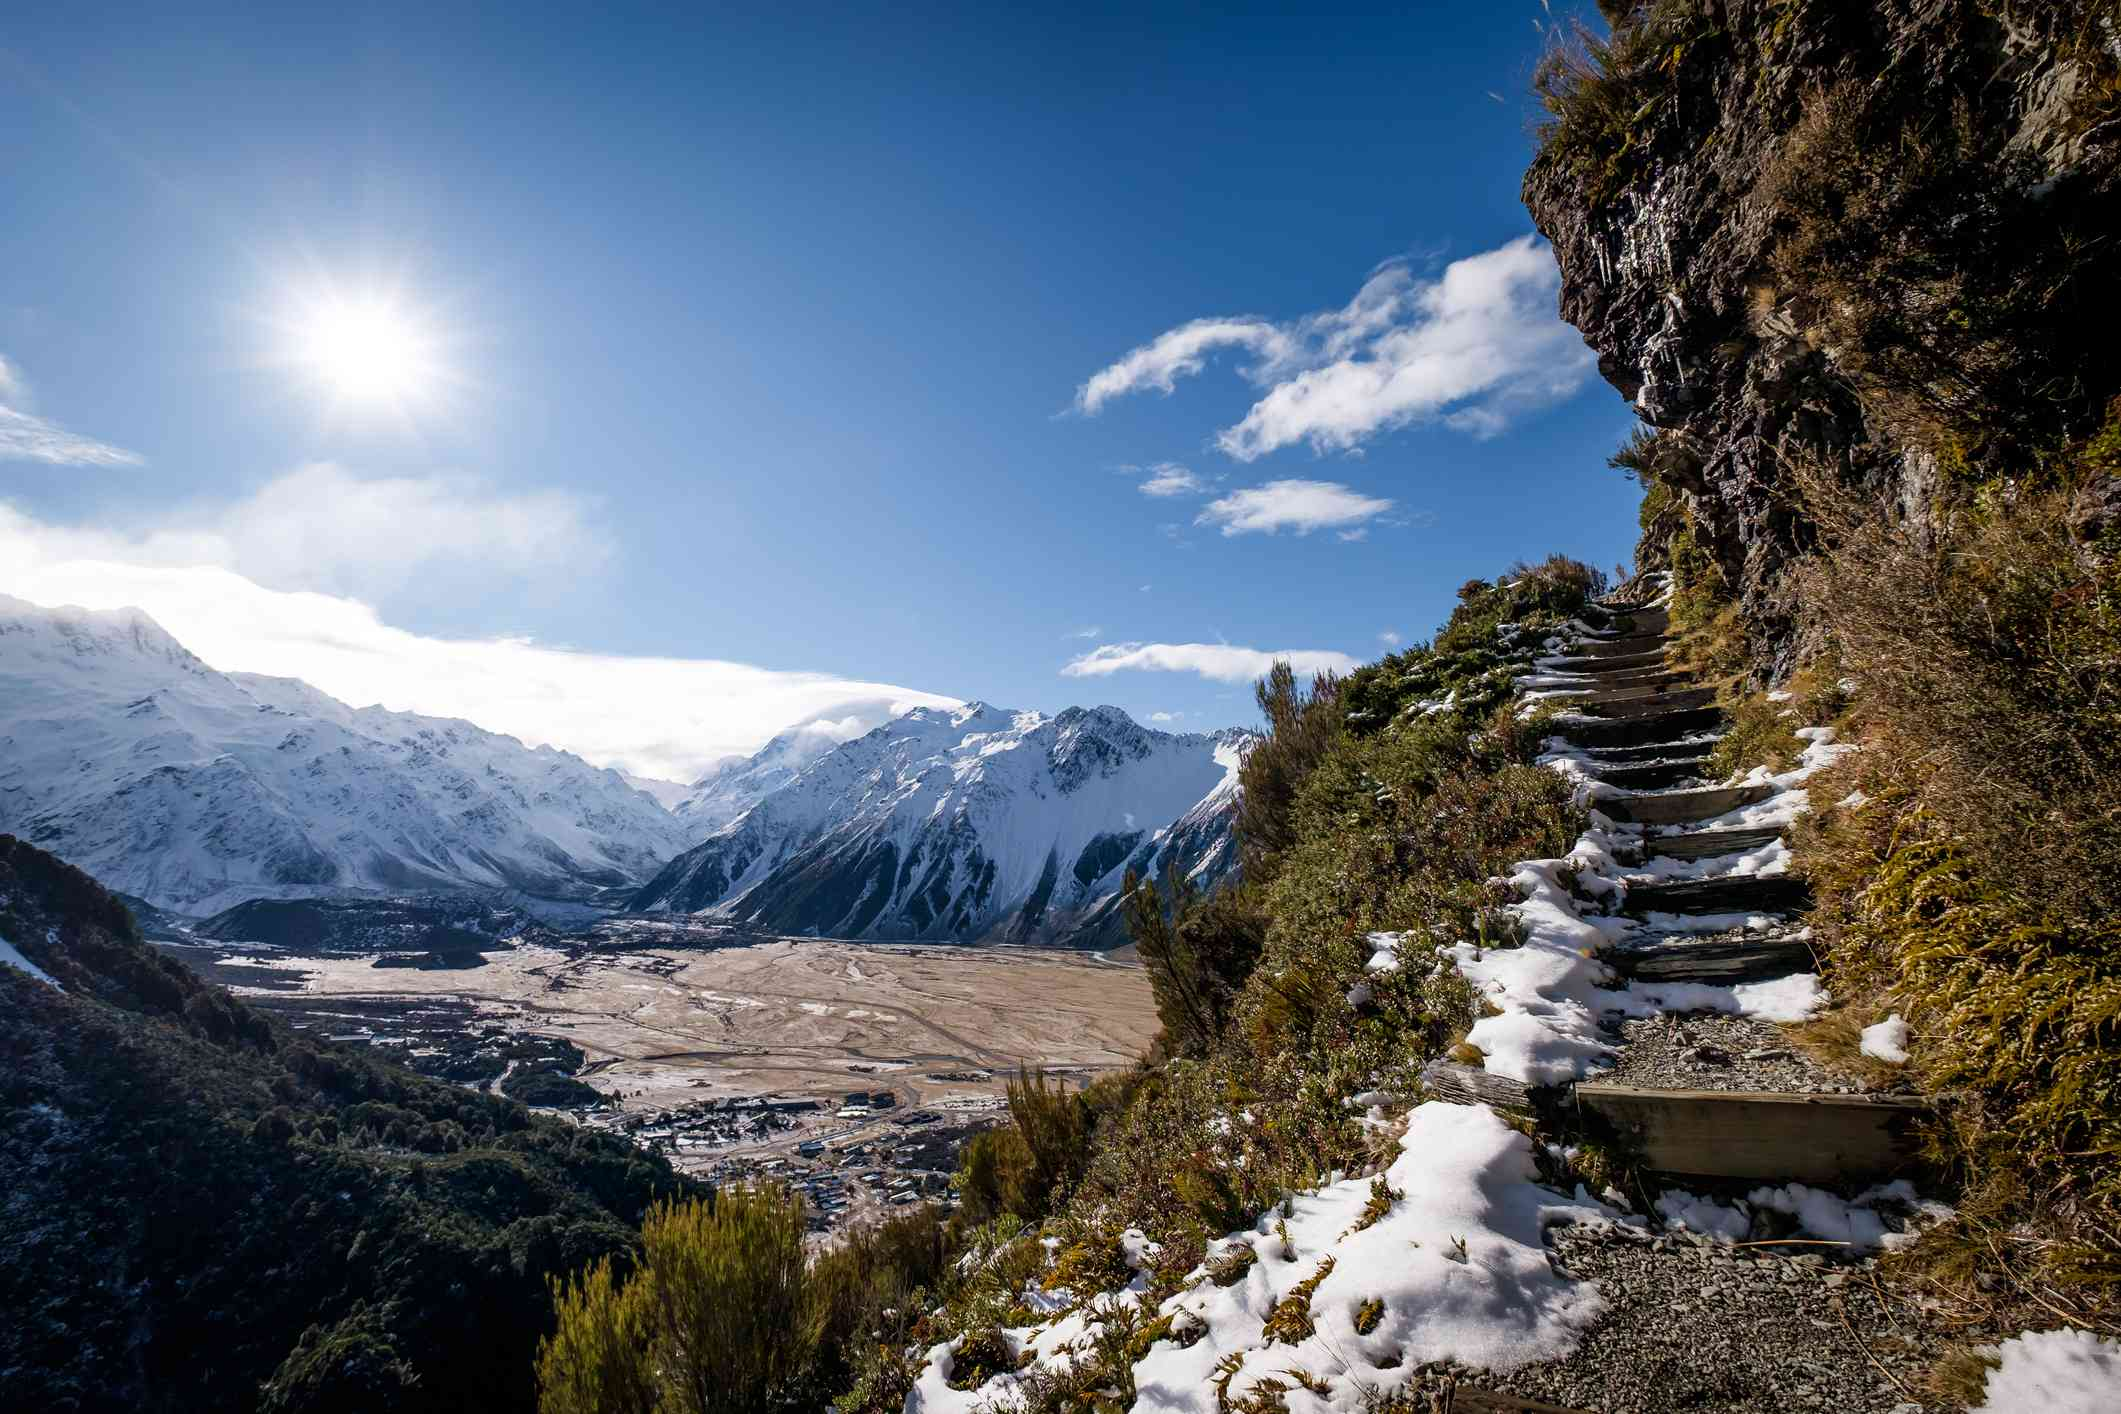 snowy mountain landscape with stone staircase beside a cliff speckled with snow